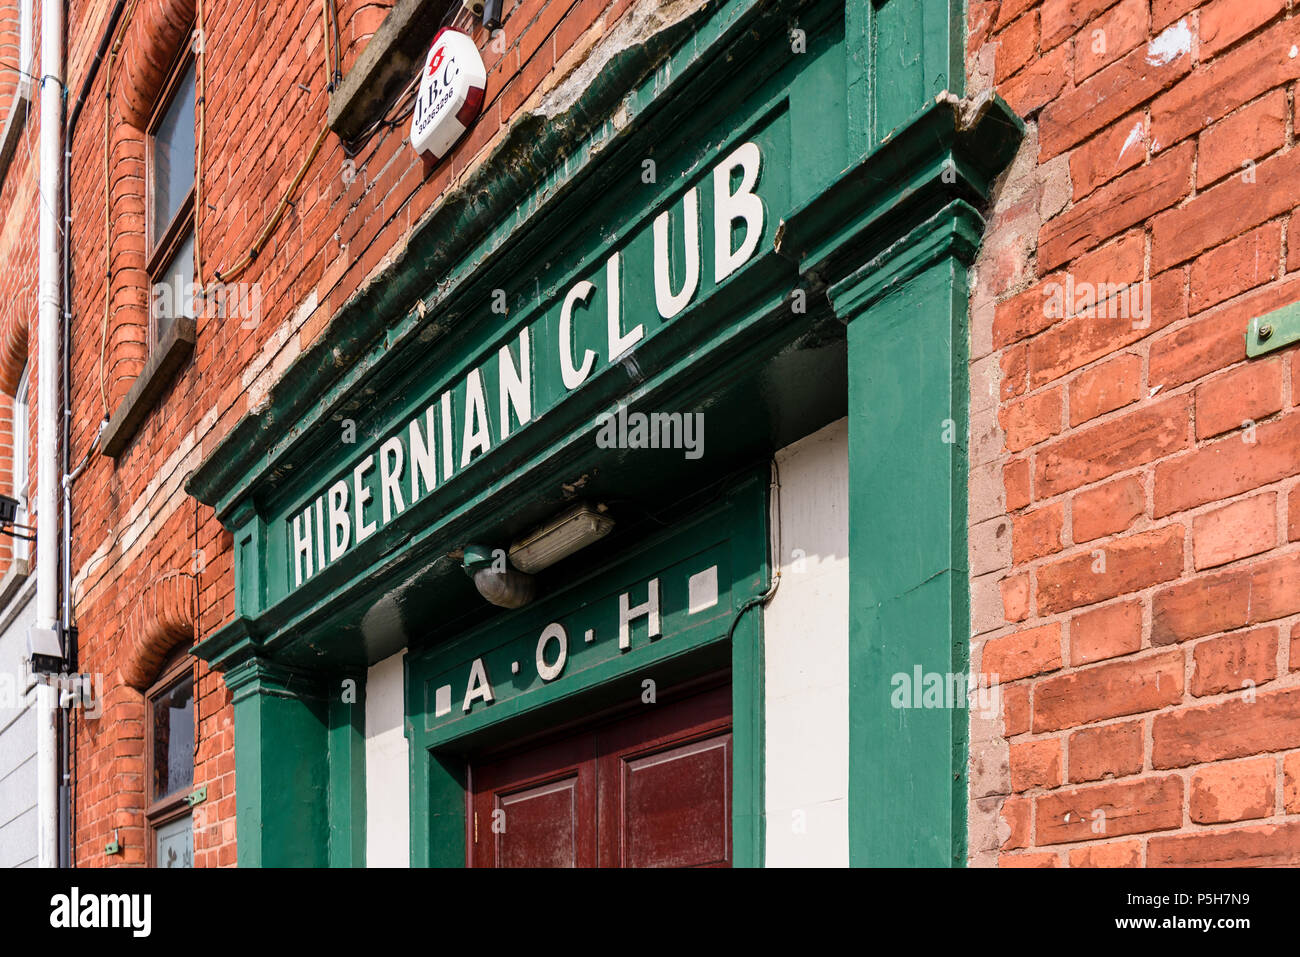 Entrance to an Ancient Order of Hiberian Club. Hibernians, AOH. Stock Photo